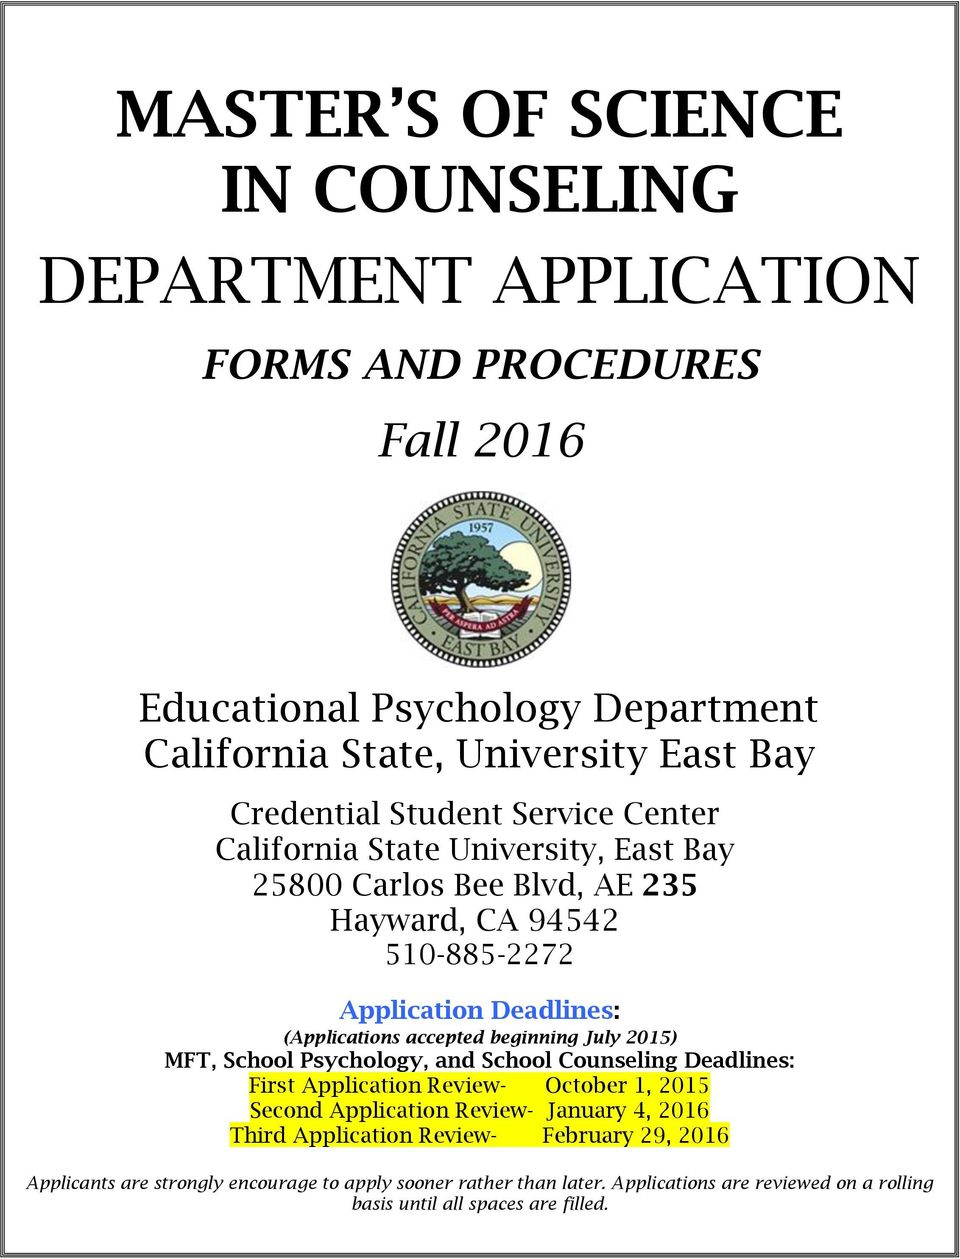 beginning July 2015) MFT, School Psychology, and School Counseling Deadlines: First Application Review- October 1, 2015 Second Application Review- January 4, 2016 Third